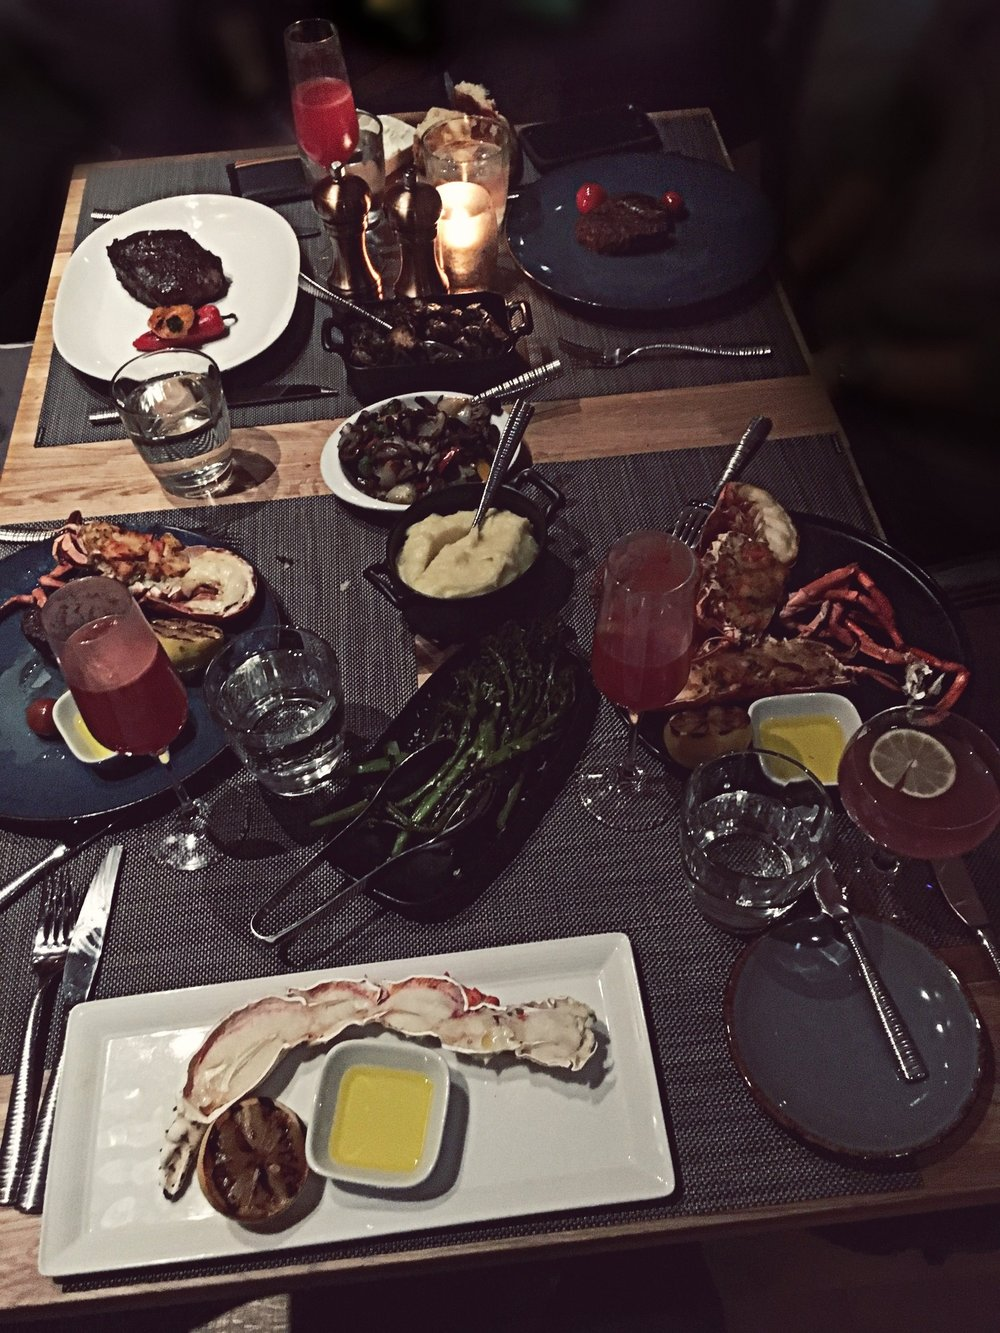 So f*cking good . . . - Our Dinner : ⤚ Salmon & Chu Toro Tuna Sashimi (not shown in photo)⤚ Bone in Striploin⤚ Filet Minion ⤚ Baked & stuffed Lobster⤚ King Crab⤚ Charred Broccolini ⤚ Roasted Mushrooms⤚ Mashed Potatoes ⤚ Port Royal & French Smash Cocktails (SO effing good)▽ FYI, I didn't eat any of the steak, as I don't eat meat (many of you already knew that). ♡ My family really enjoyed it though ☺